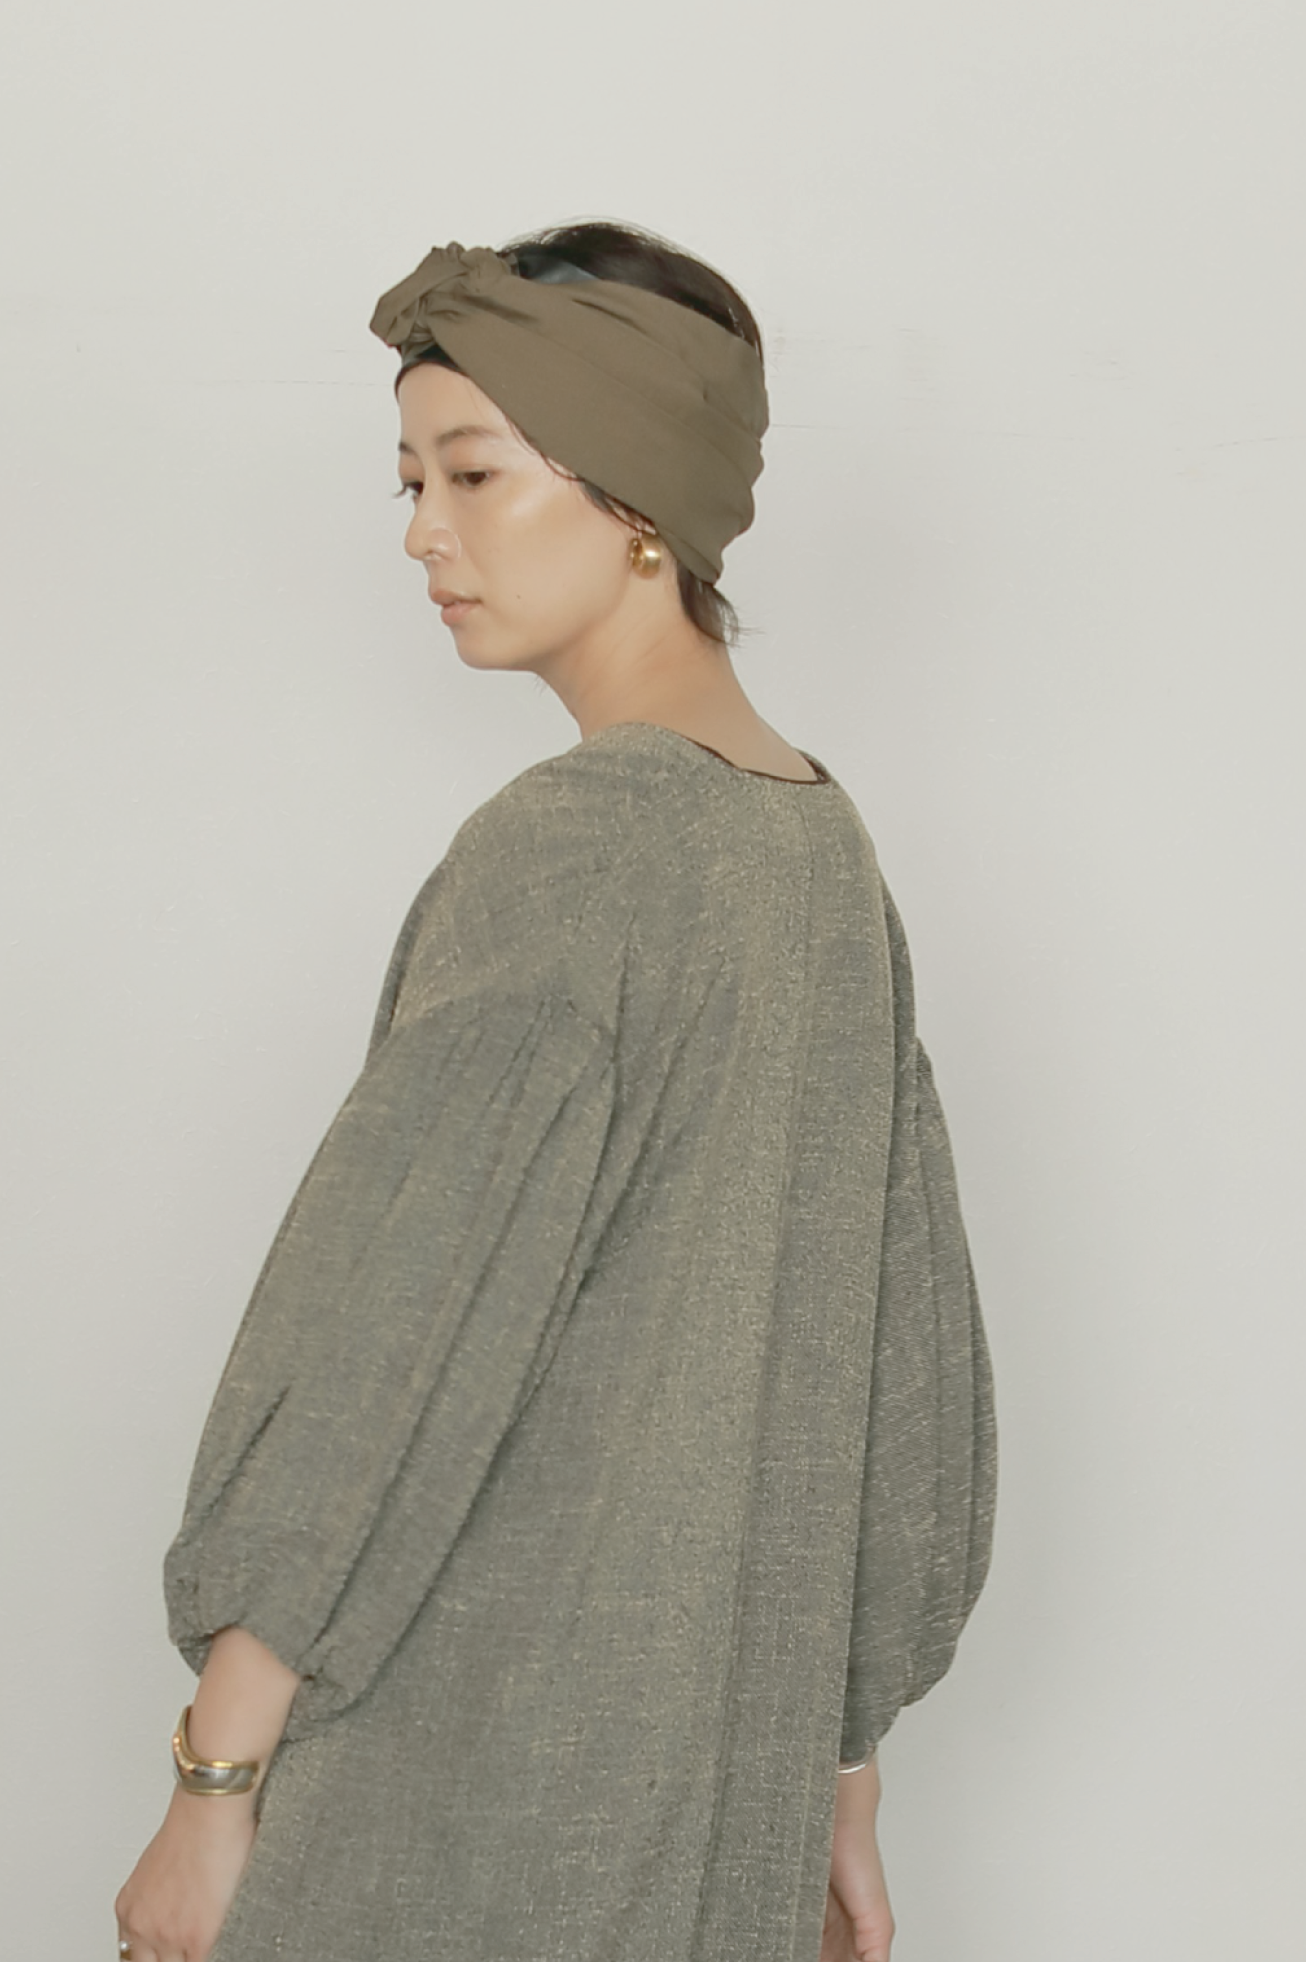 SYNTHETIC LEATHER × BROAD HAIR TURBAN